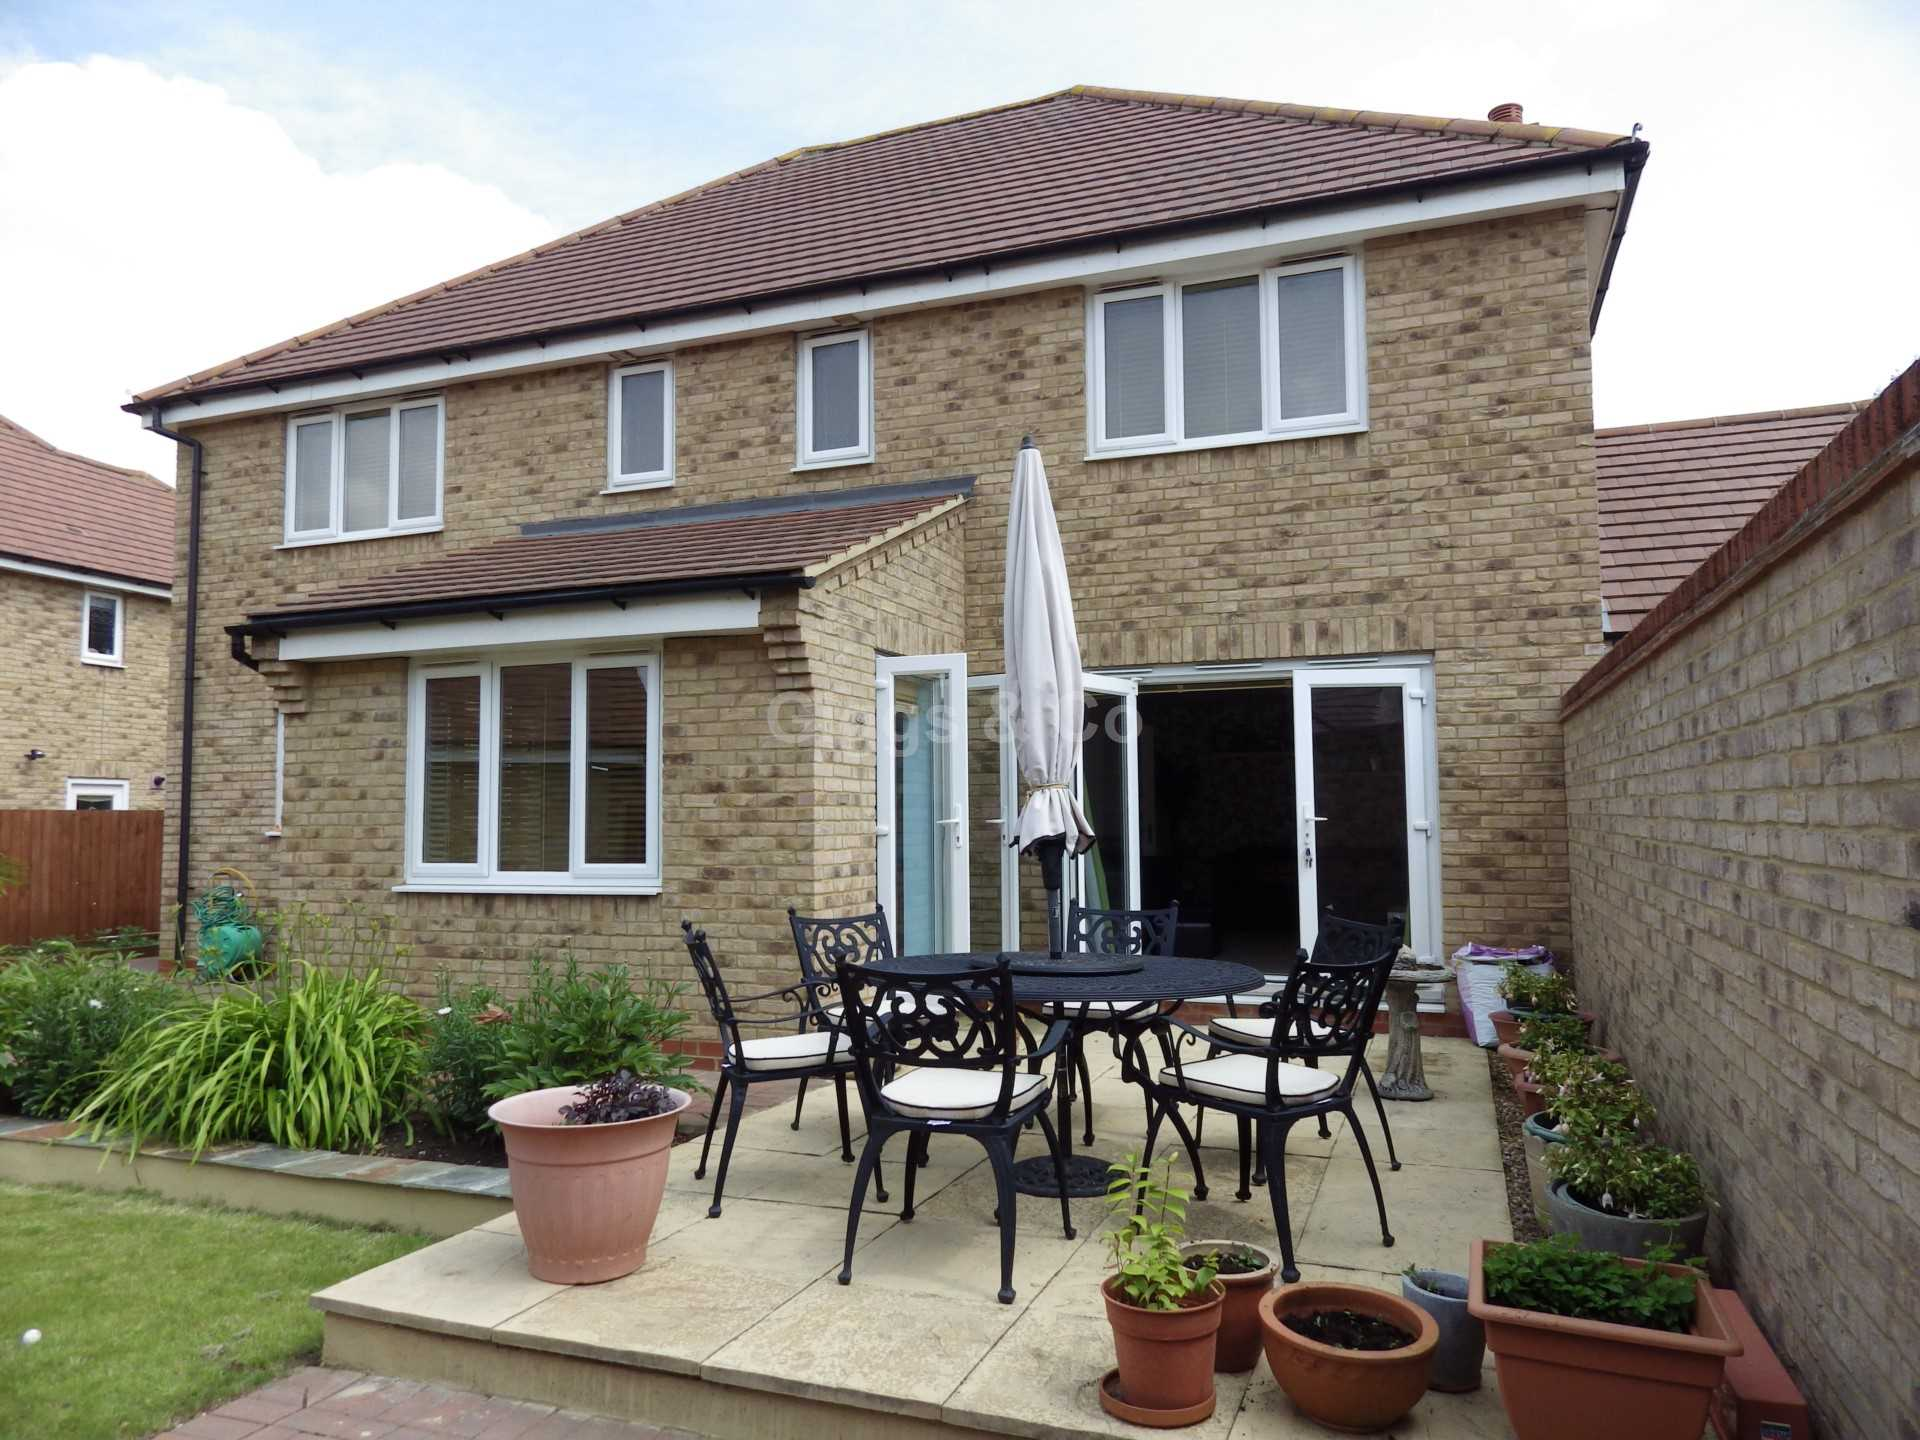 5 bed detached house to rent in Stone Hill, St Neots, PE19